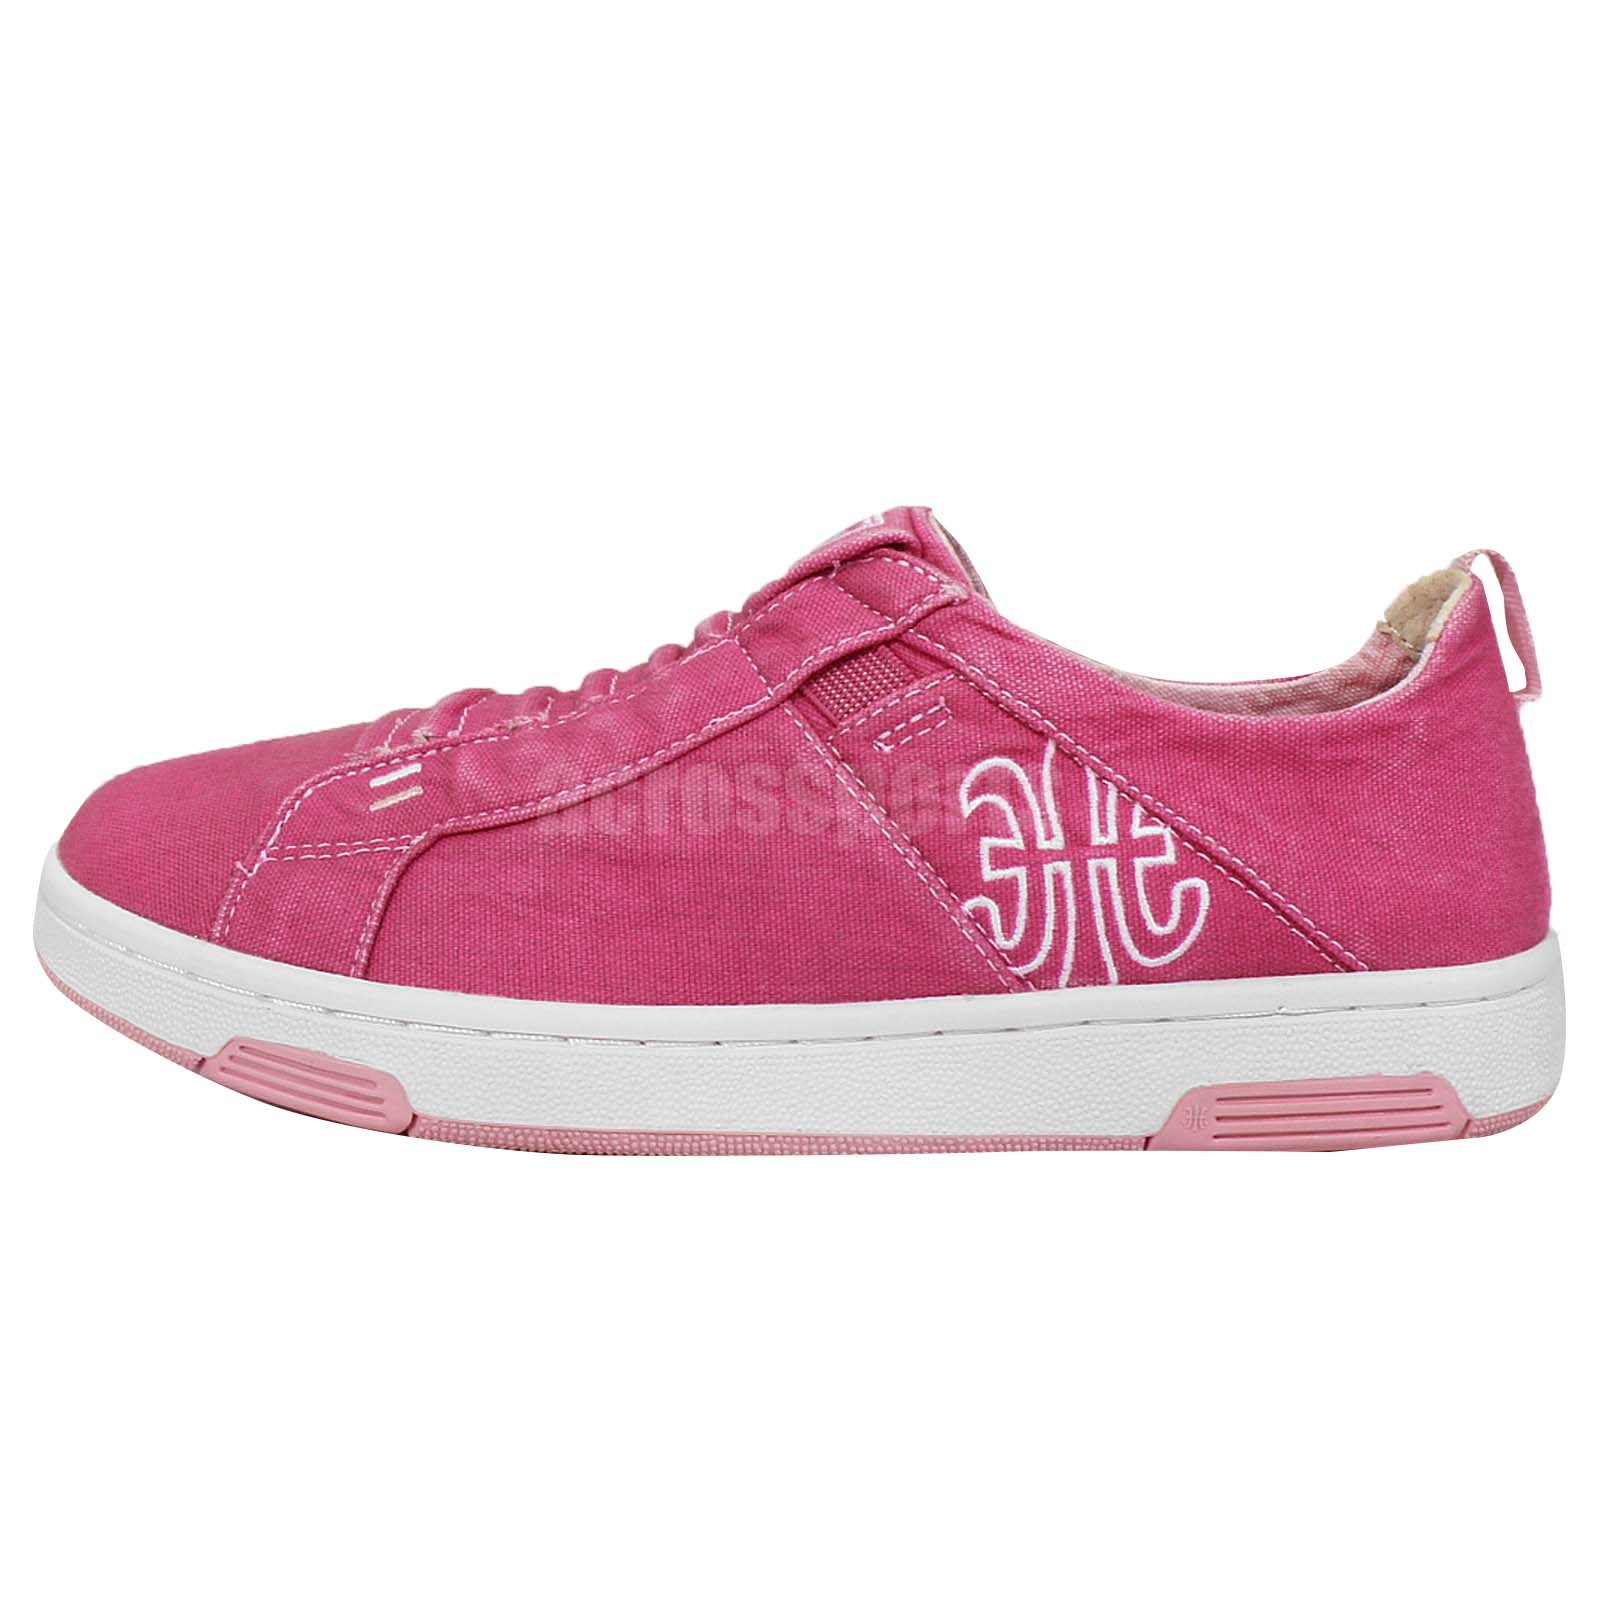 royal elastics icon washed pink white womens without laces